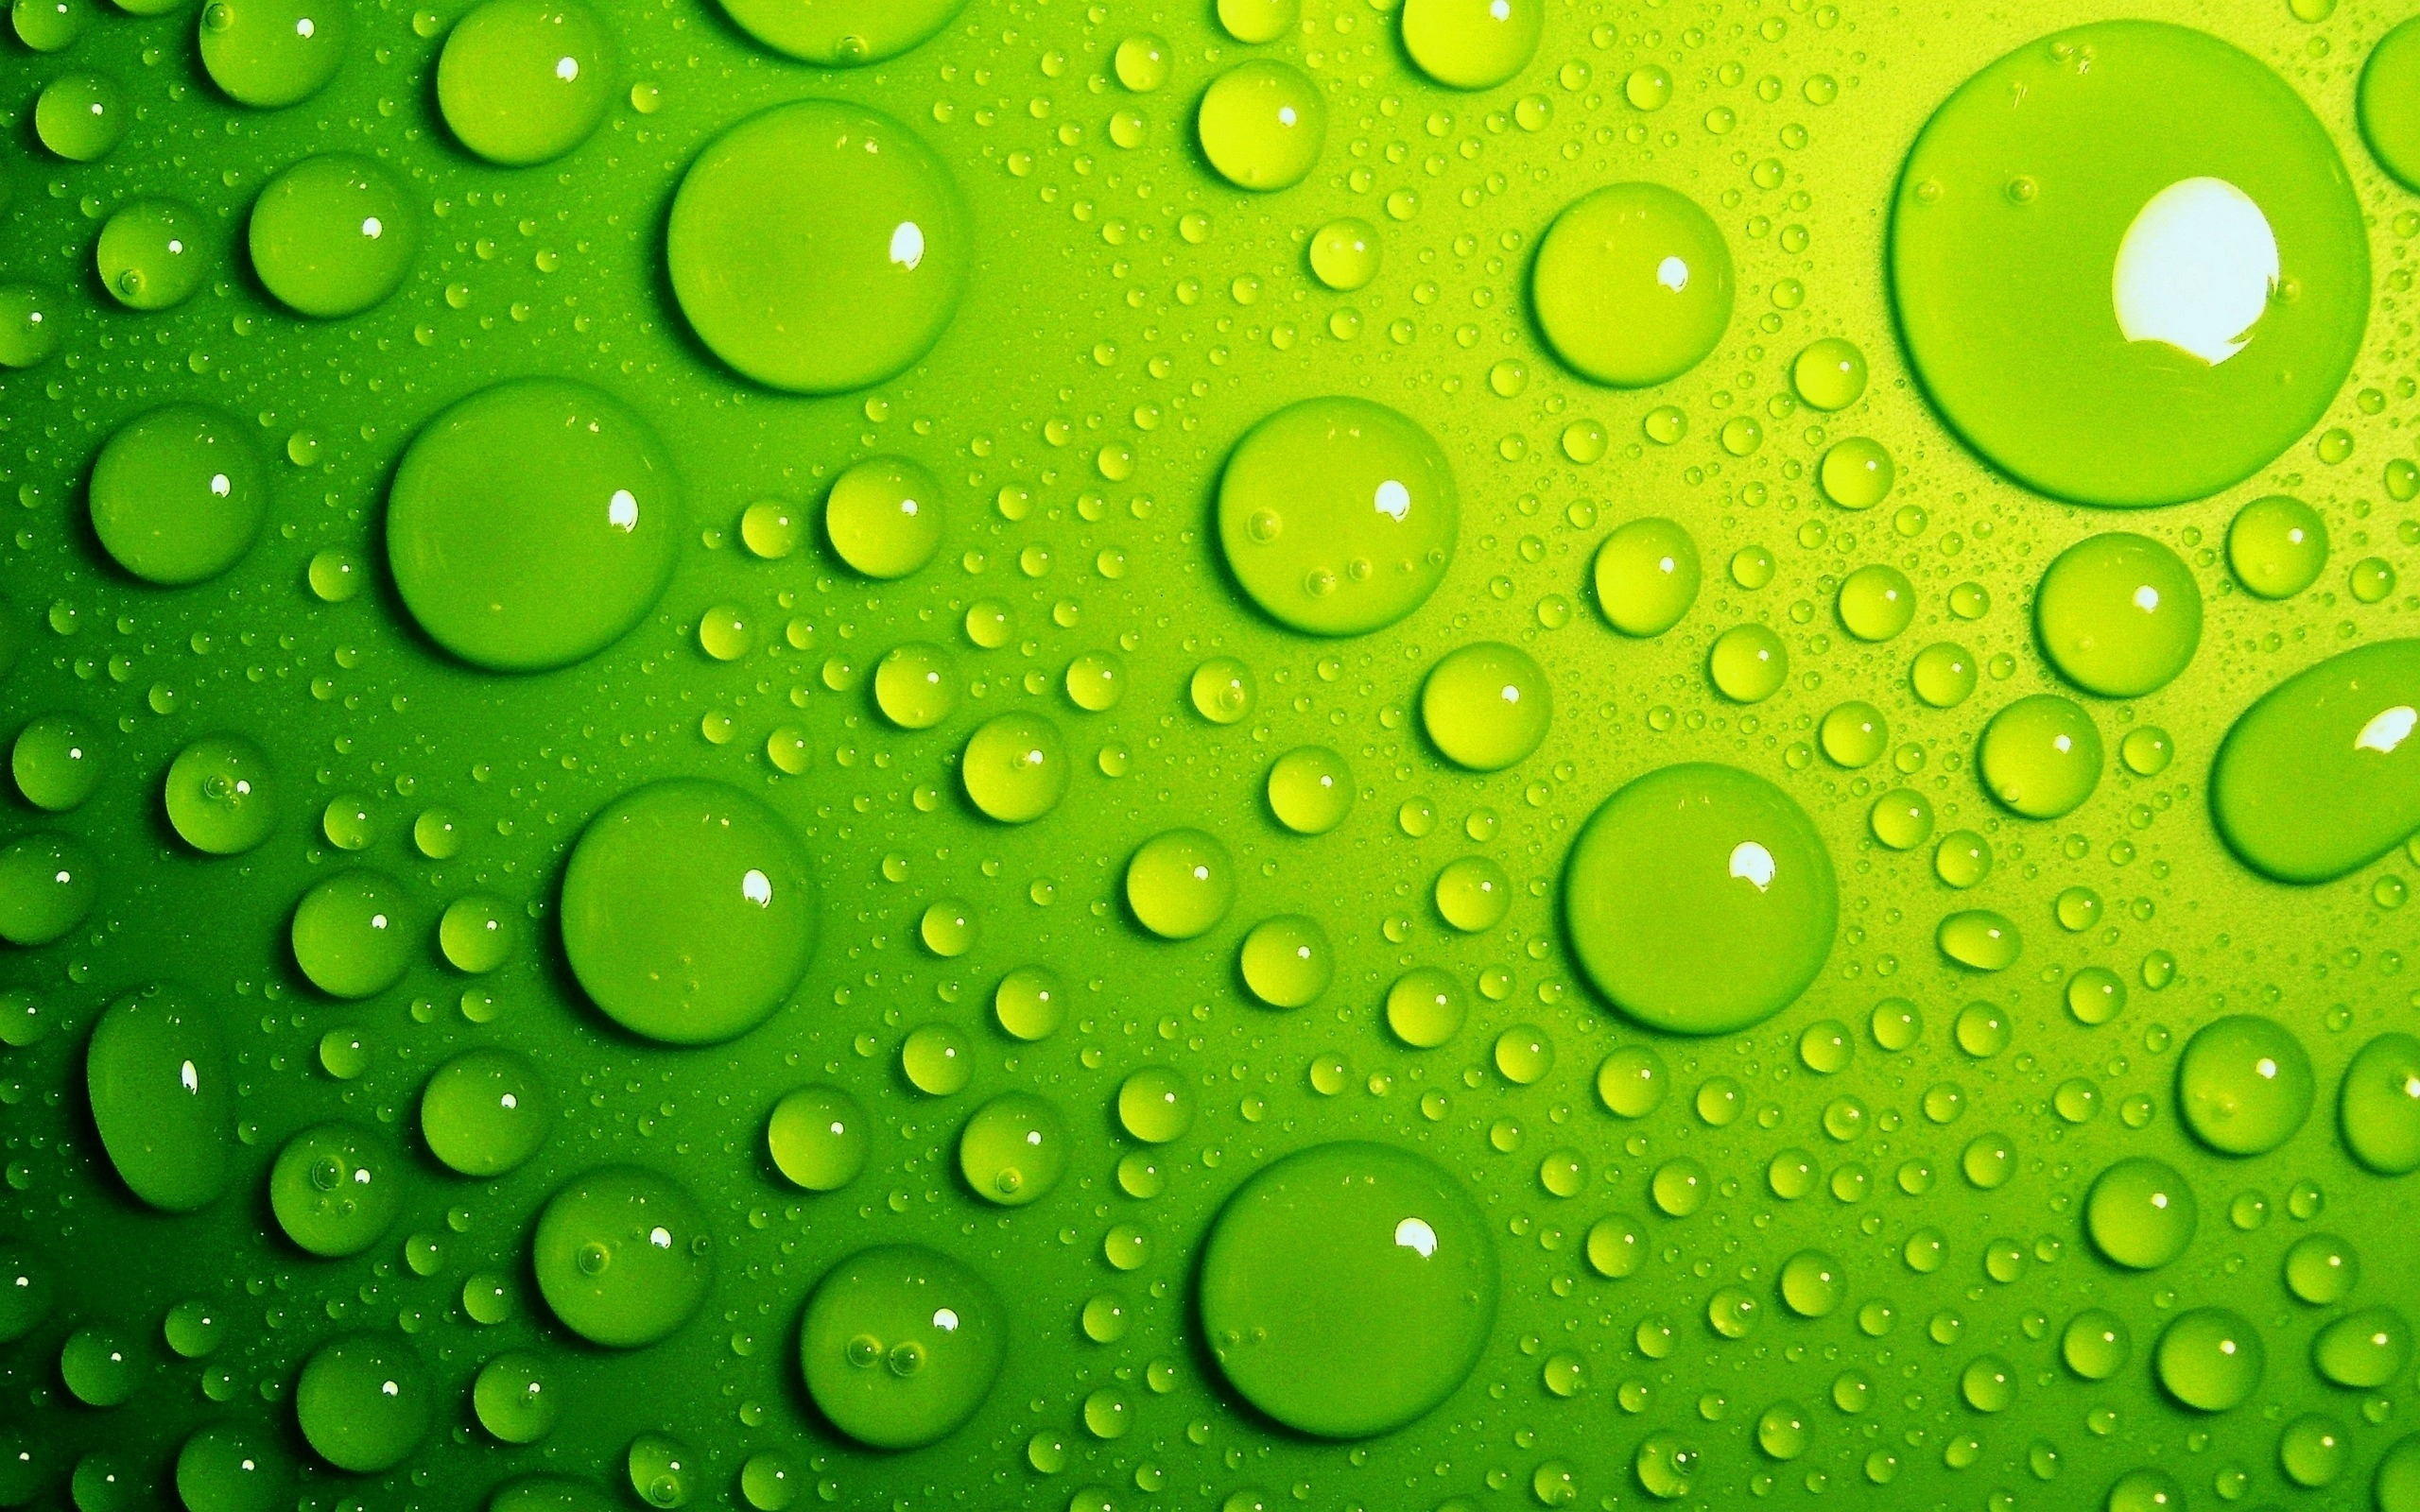 Water Drop Full HD Wallpaper and Background 2560x1600 ID376720